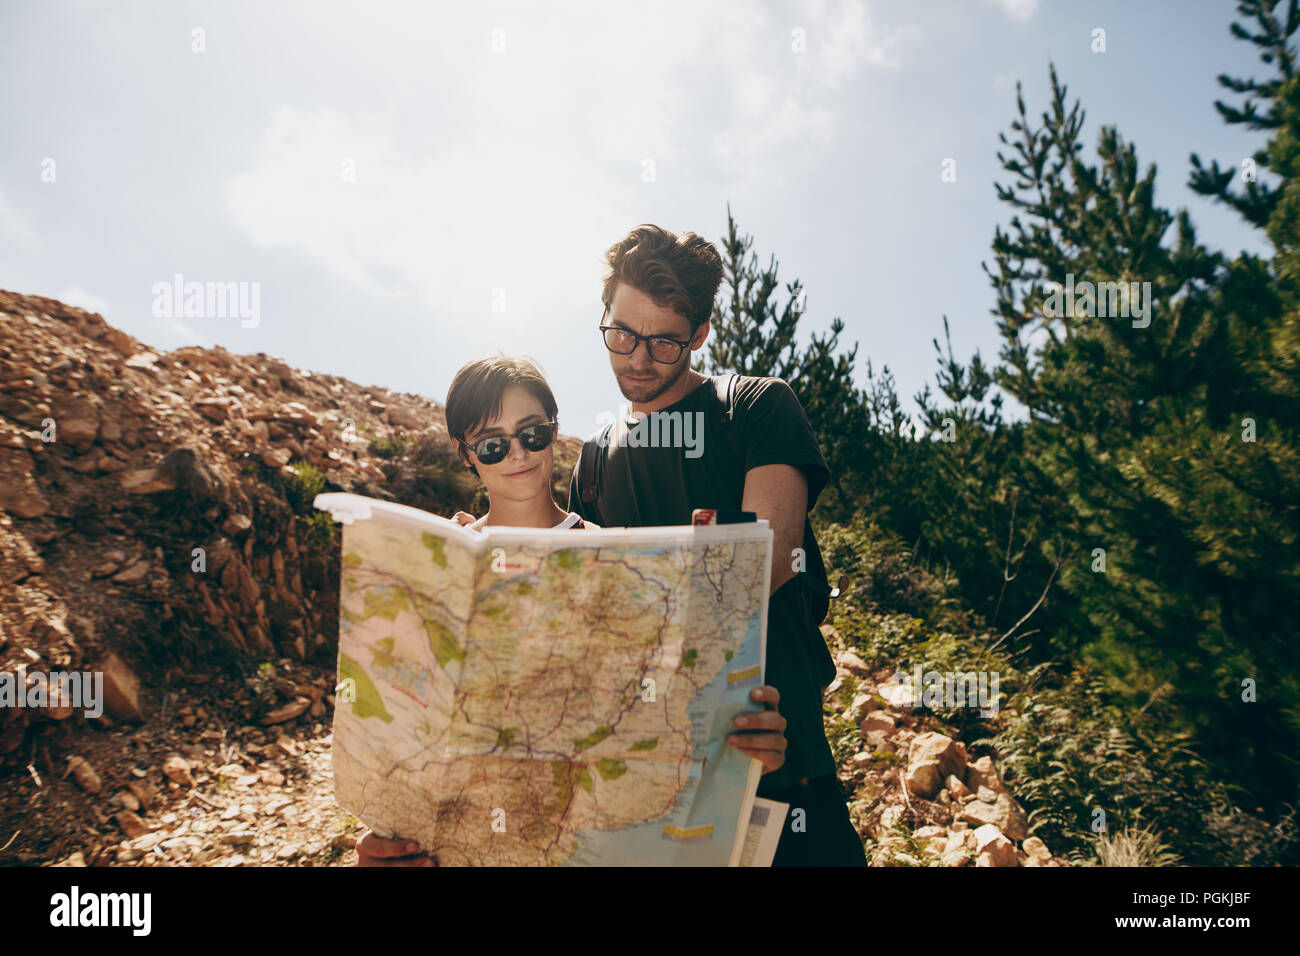 Man and woman holding a navigation map while hiking in a forest. Tourist couple using a map to find the route to their destination. - Stock Image